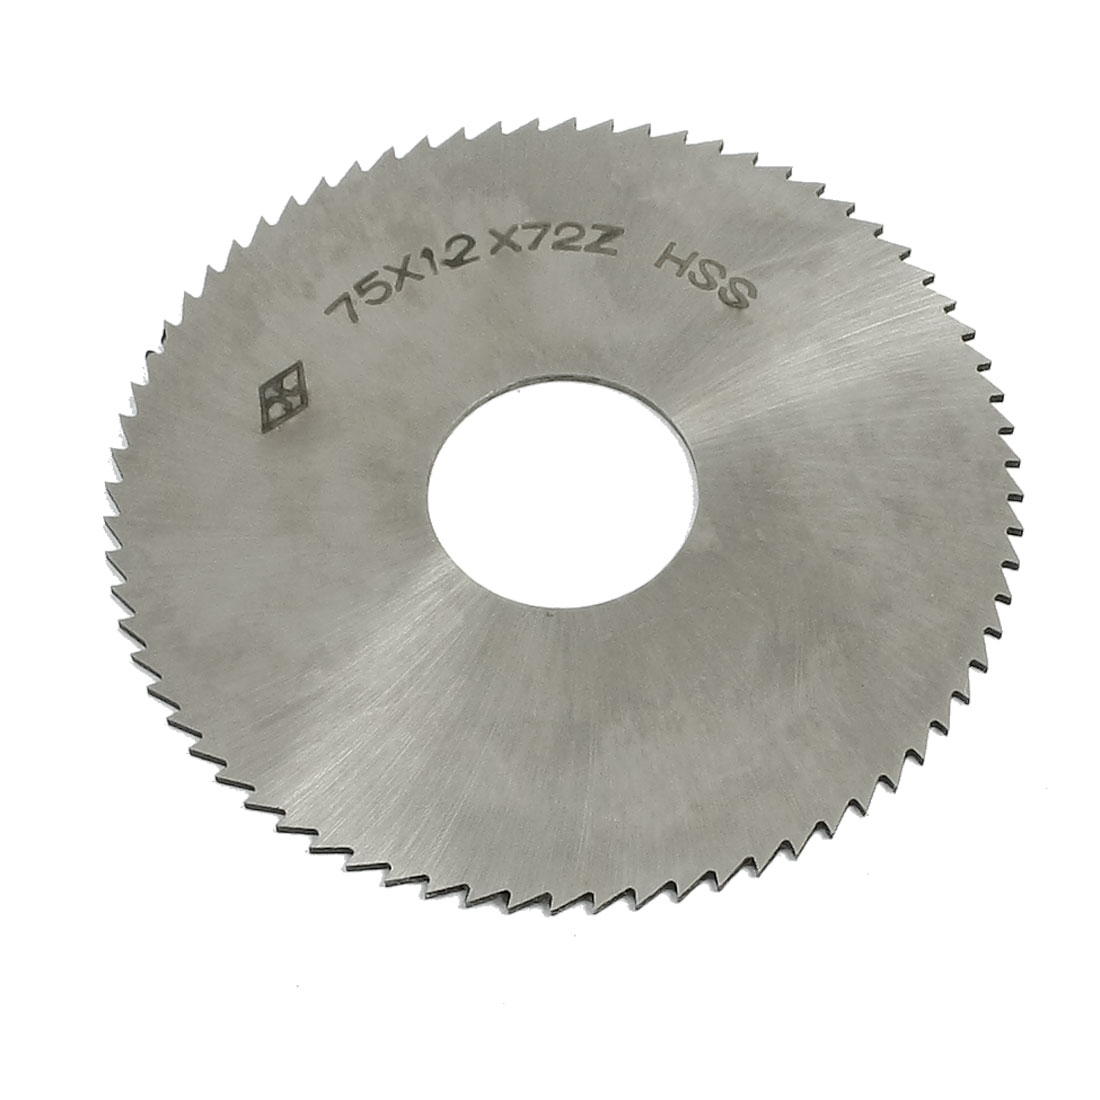 High Speed Steel 72T Slitting Saw Milling Cutter 75mm x 22mm x 1.2mm